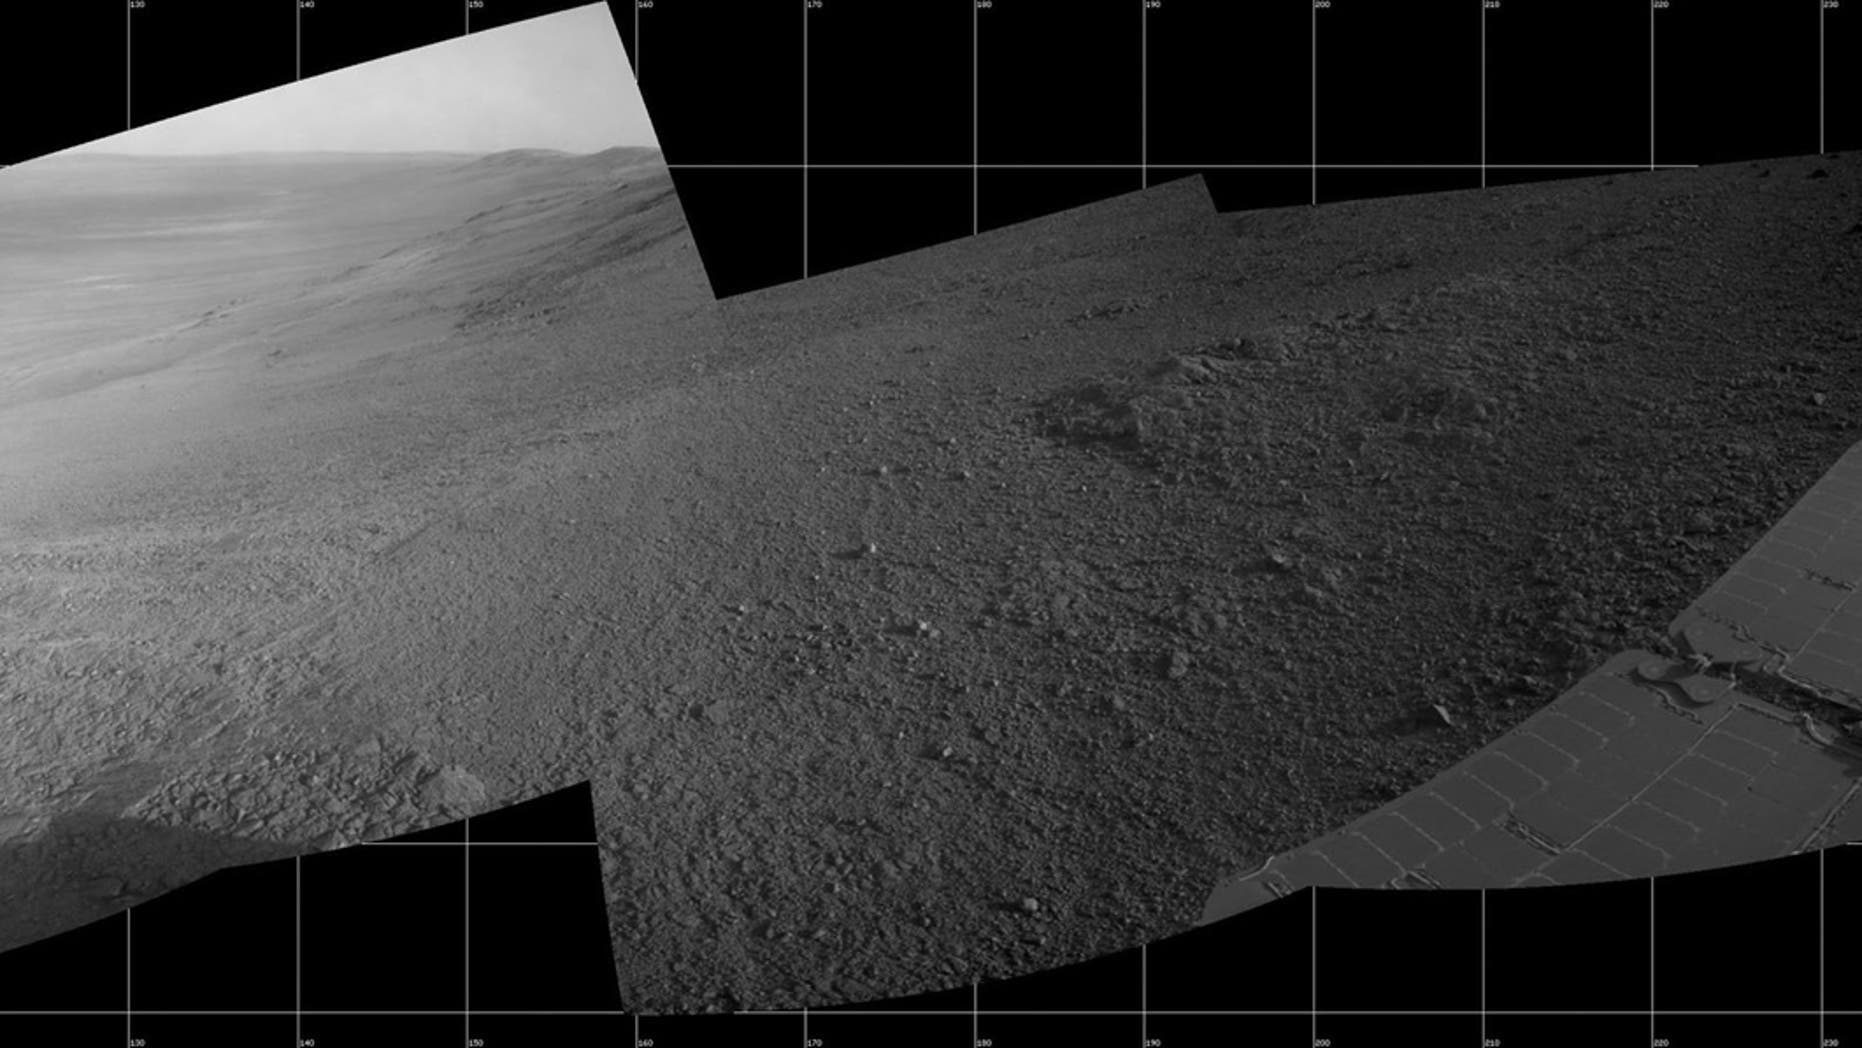 "About 11 months before the current dust storm enveloped the rover, Opportunity took five images that were turned into a mosaic showing a view from inside the upper end of ""Perseverance Valley"" on the inner slope of Endeavour Crater's western rim. The images were taken on July 7, 2017. (Credit: NASA/JPL-Caltech)"